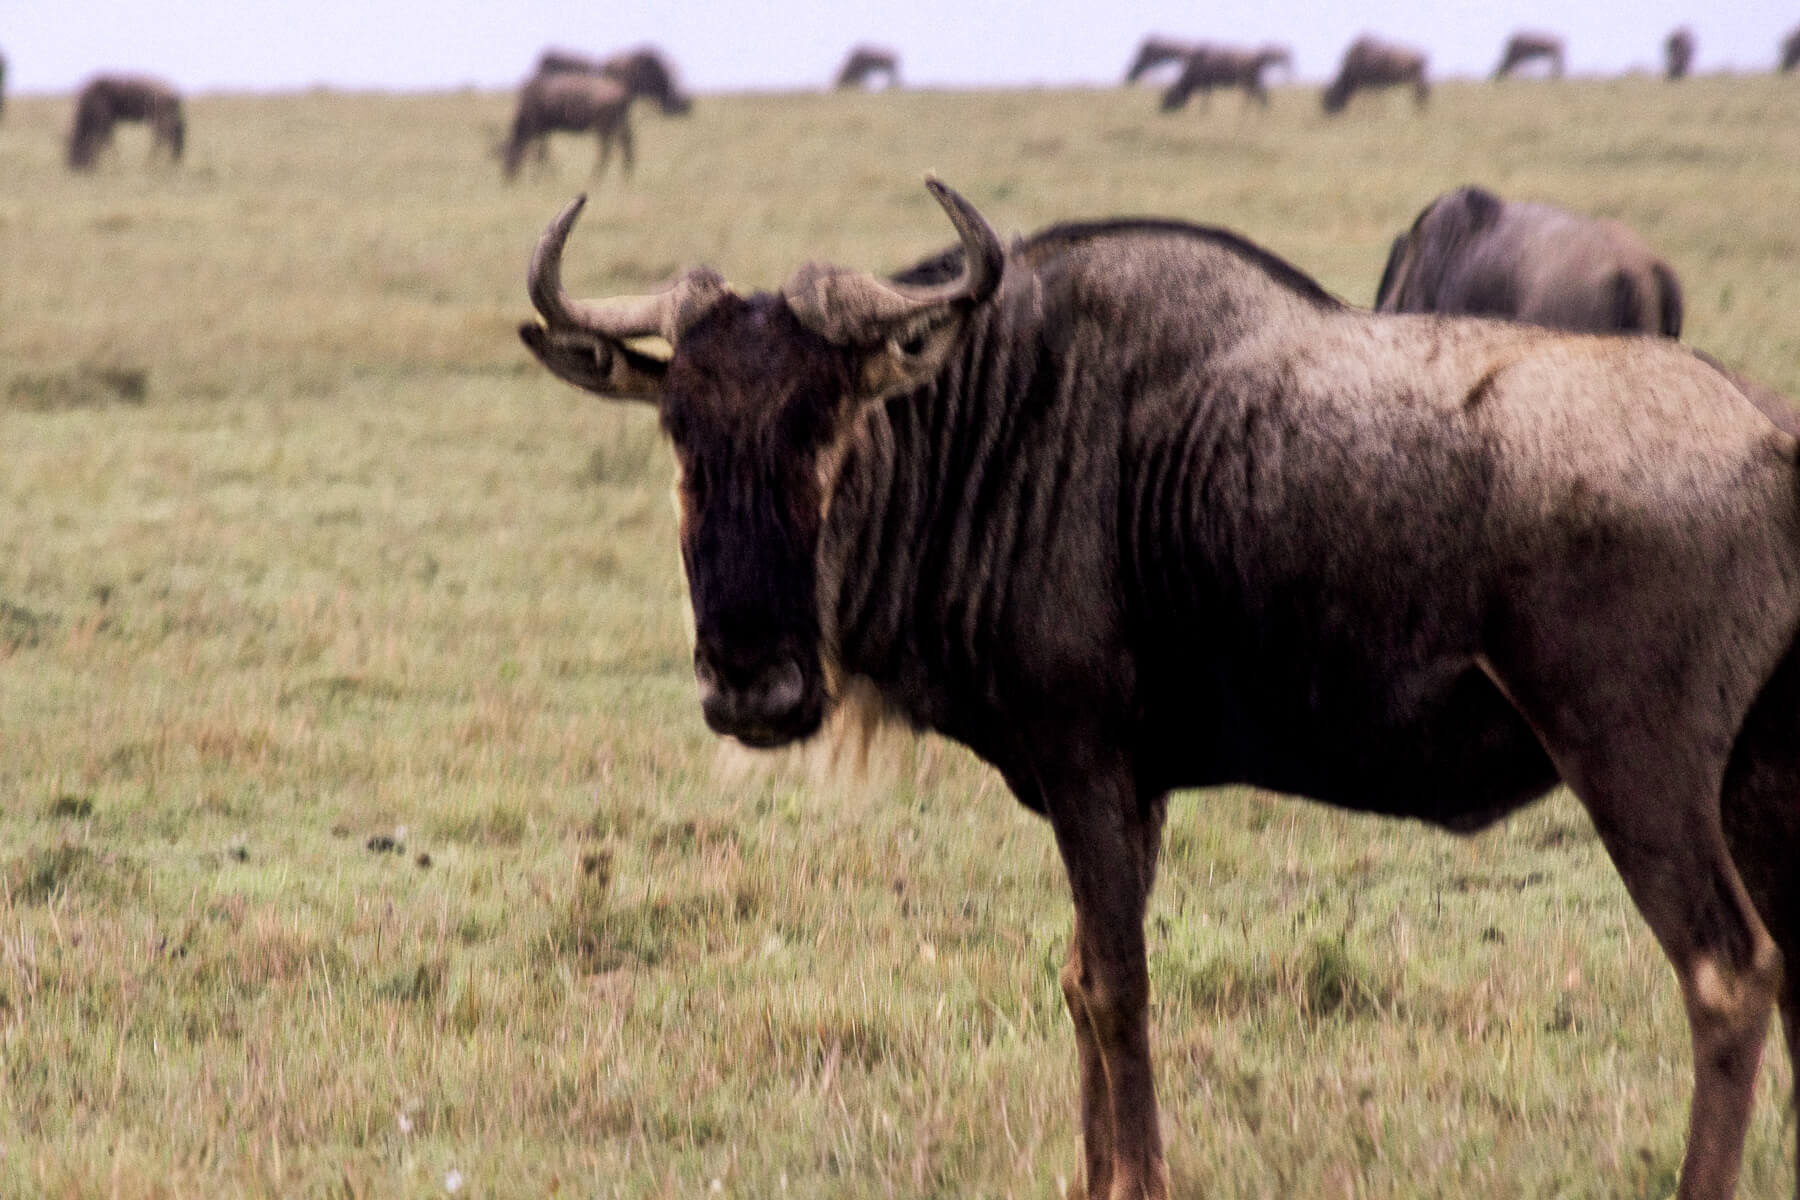 Close up of a big Wildebeest looking towards the camera with his herd behind him